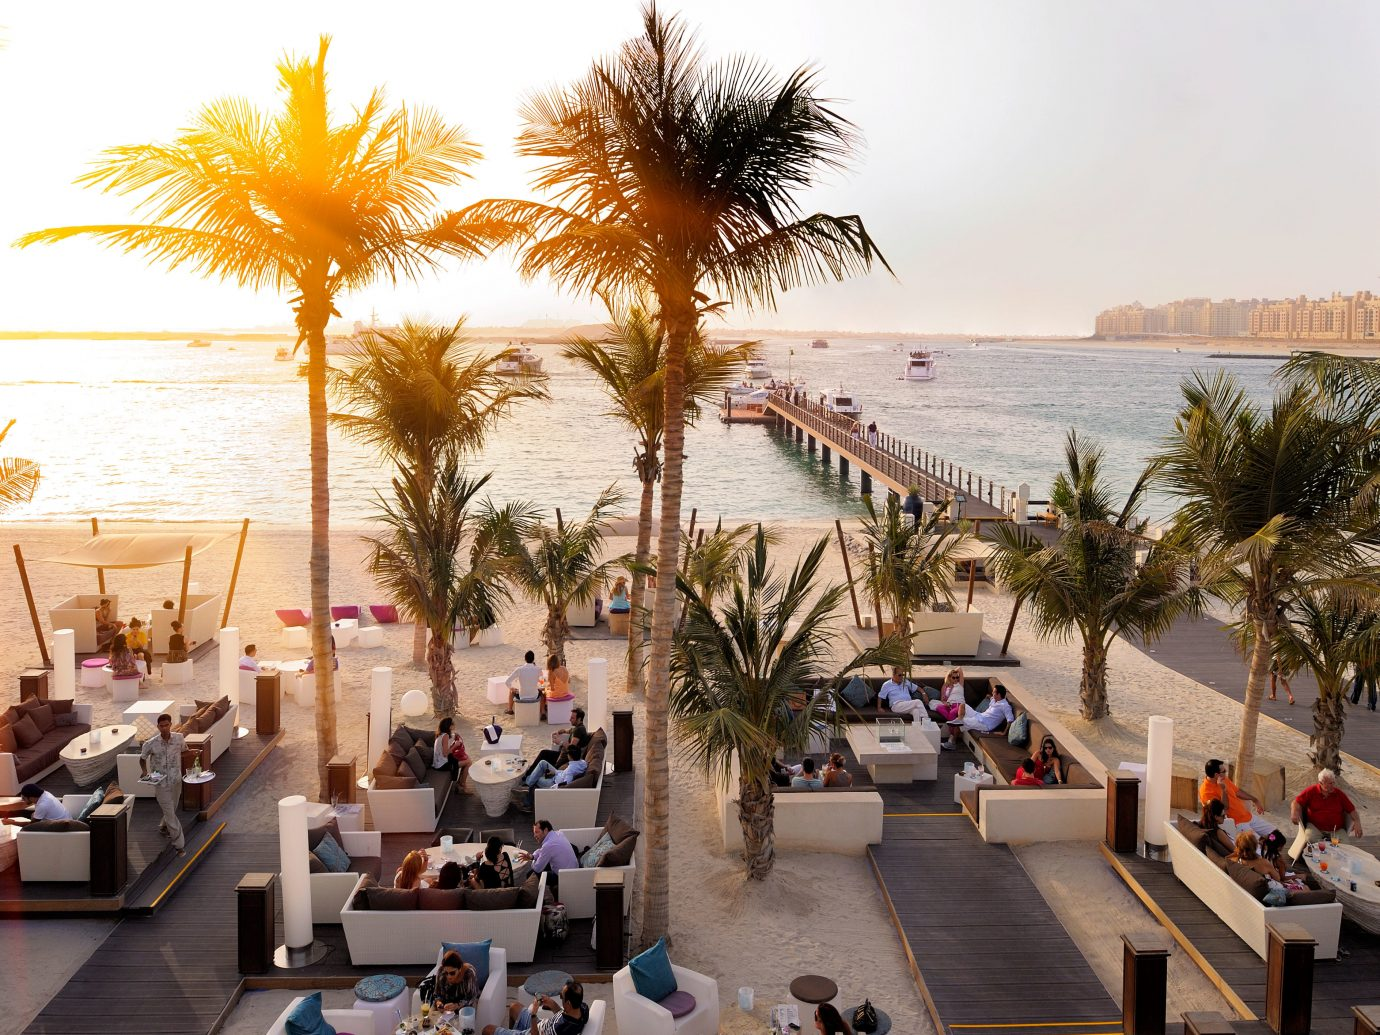 Beach Beachfront Drink Dubai Eat Elegant Hotels Lounge Luxury Luxury Travel Middle East Modern Resort Waterfront sky tree outdoor leisure vacation estate arecales palm plaza plant furniture